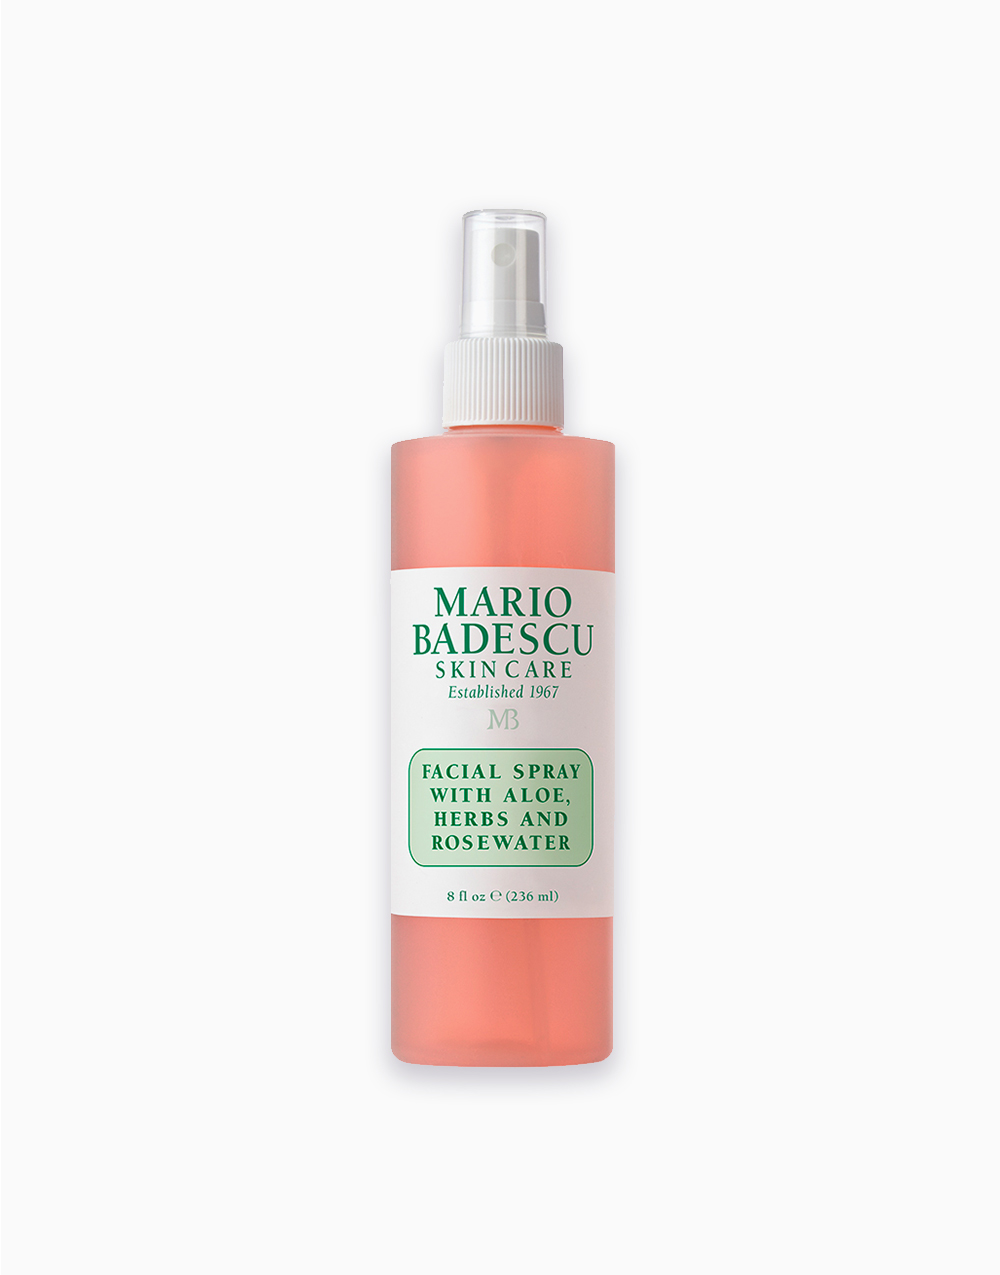 Facial Spray With Aloe, Herbs, and Rosewater (8oz) by Mario Badescu